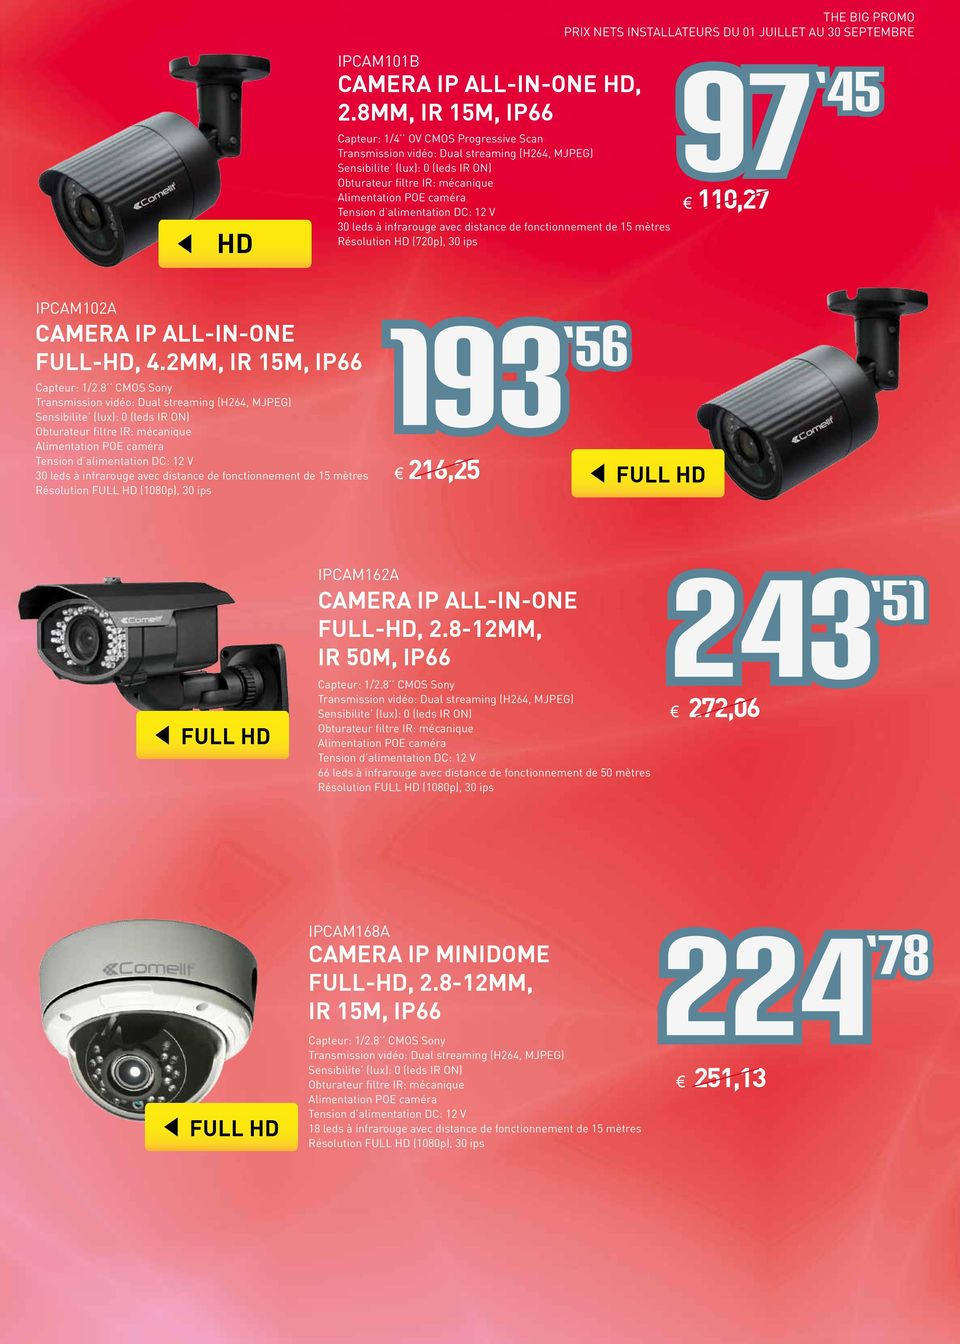 Résolution HD (720p), 30 ips 97 45 110,27 IPCAM102A CAMERA IP ALL-IN-ONE FULL-HD, 4.2MM, IR 15M, IP66 Capteur: 1/2.